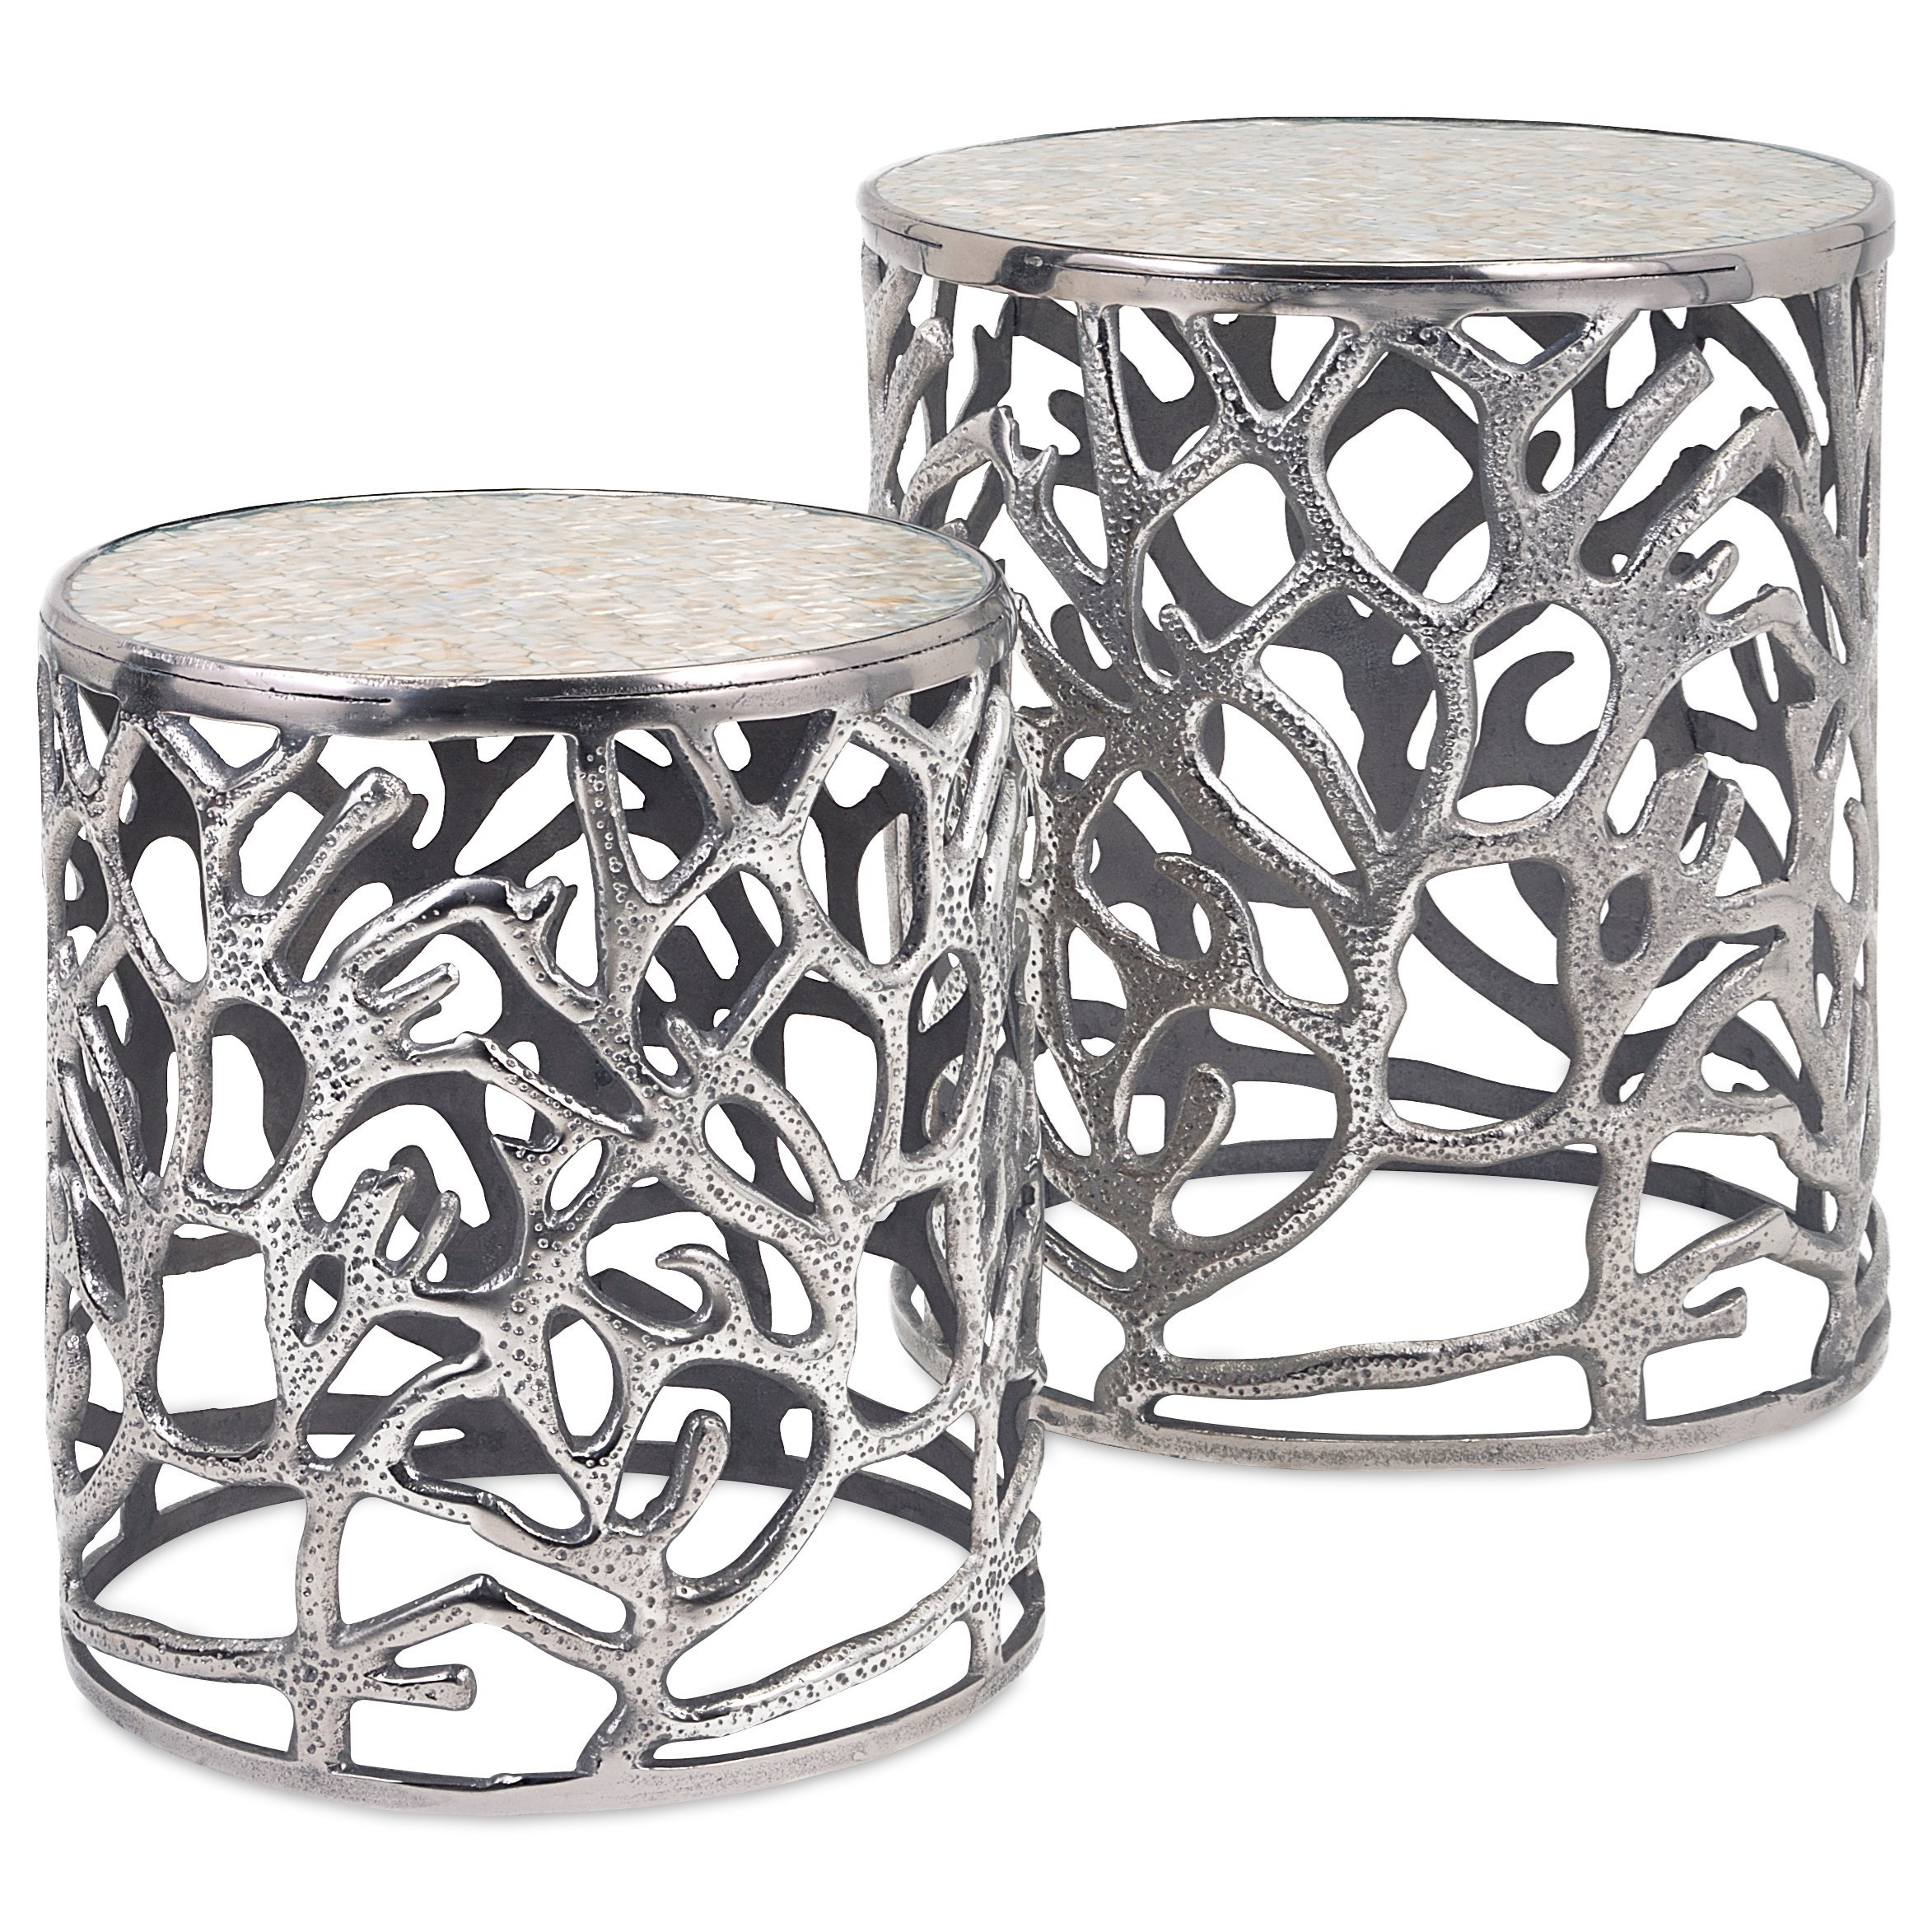 Accent Tables and Cabinets Daltry Coastal Tables - Set of 2 by IMAX Worldwide Home at Alison Craig Home Furnishings